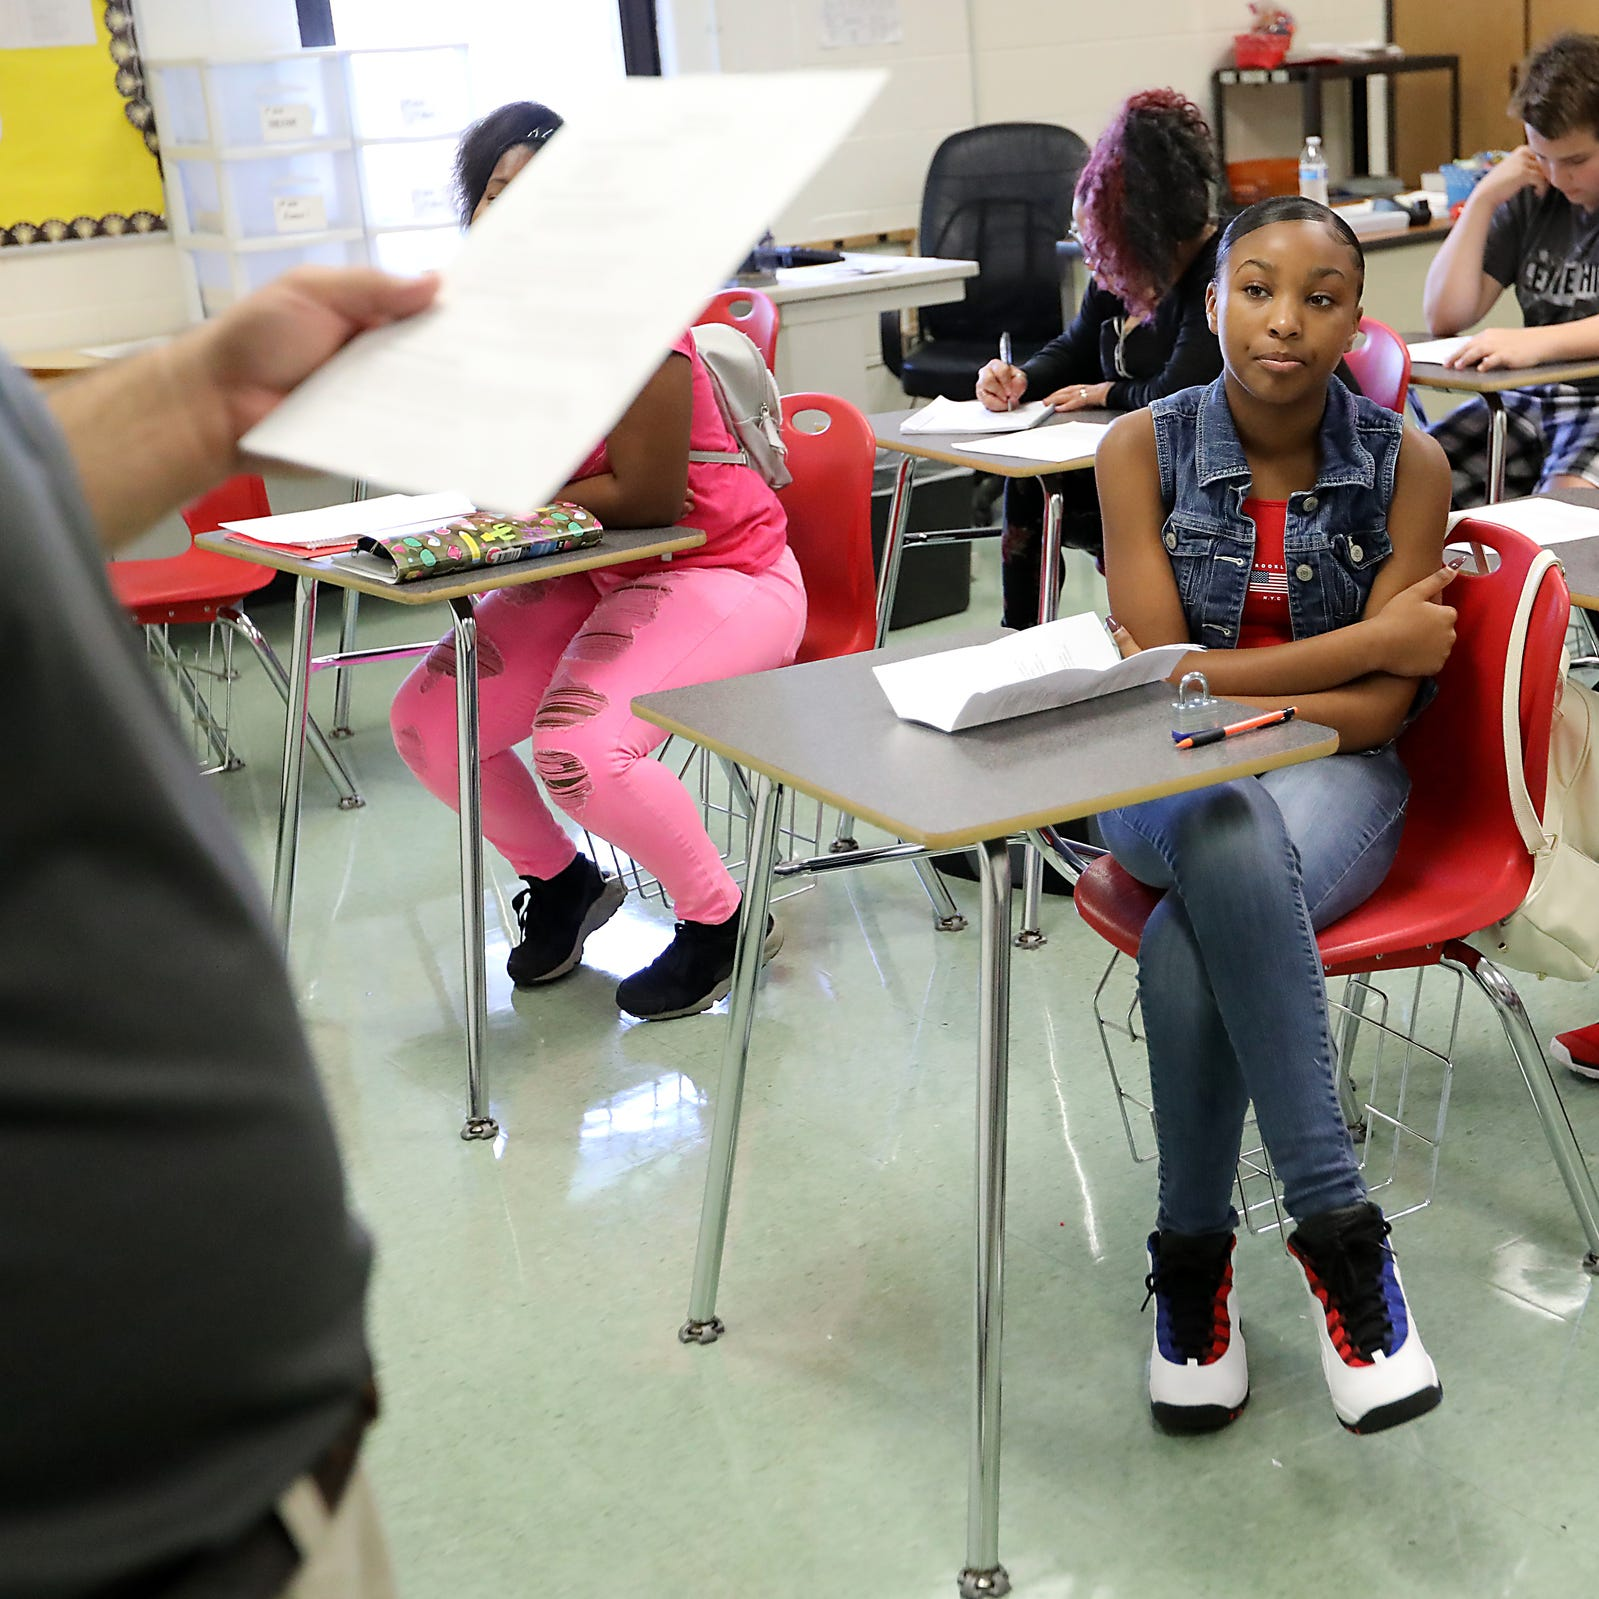 Tynae Ward, 13, of Harper Woods listens to instruction in her accelerated high school algebra class at Wilkinson middle school in Madison Heights, Mich., photographed on Thurs., Aug 9, 2018. Ward's school started early this year before Labor Day, cutting her summer short by almost a month.